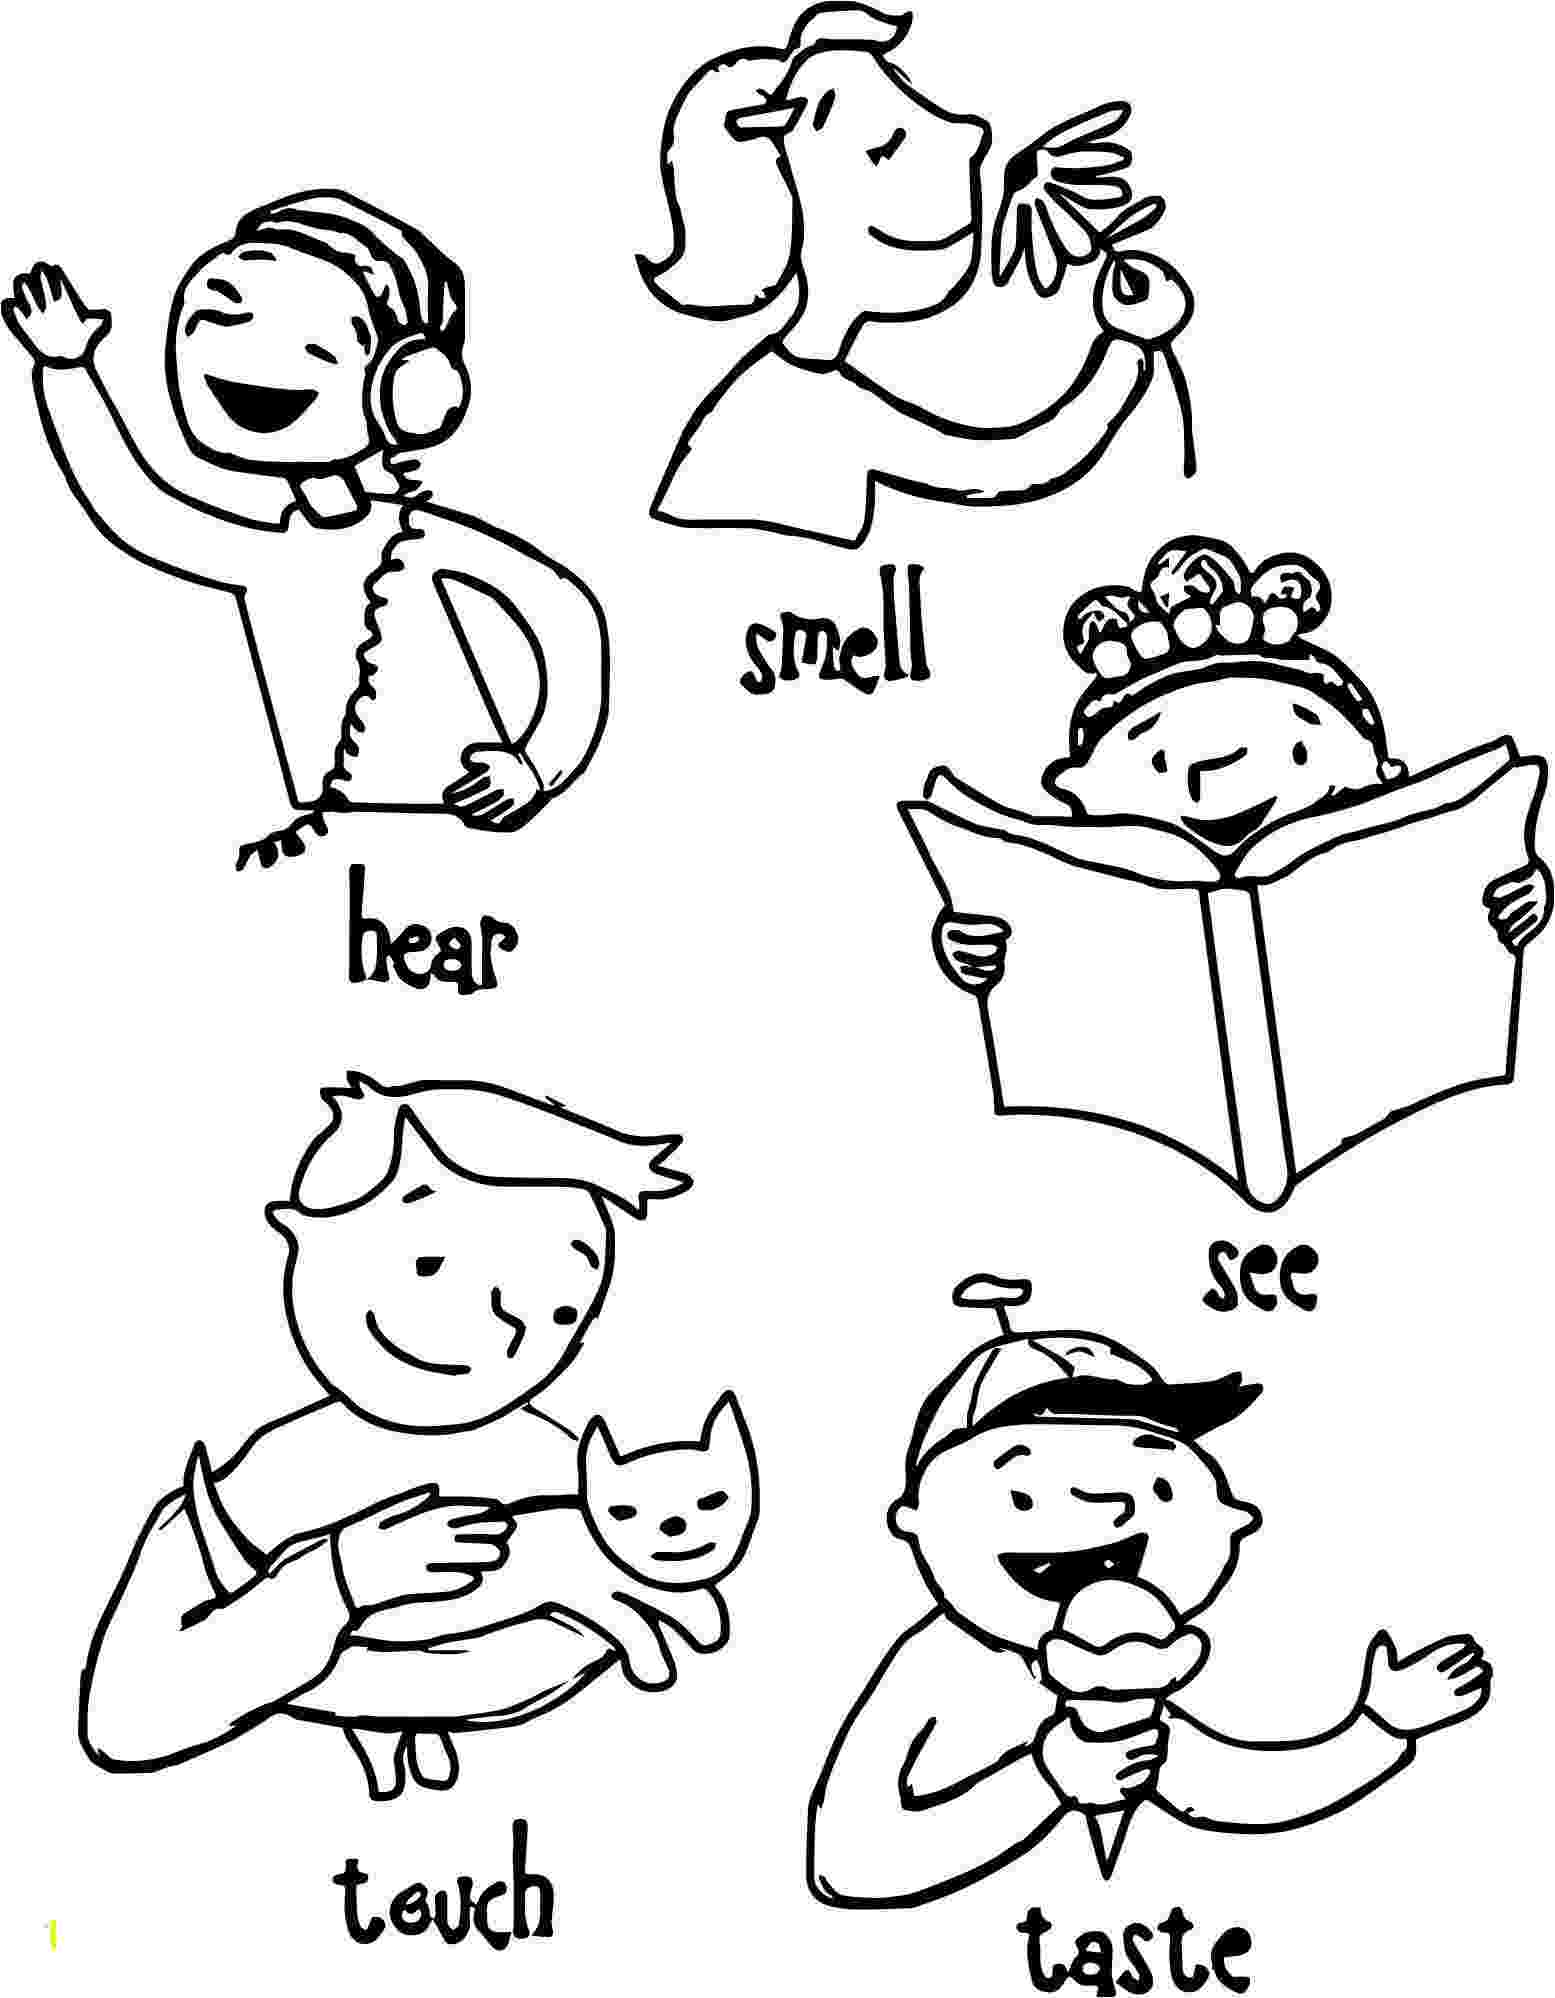 5 senses coloring pages for preschoolers free my five senses coloring pages download free clip art 5 coloring for preschoolers senses pages